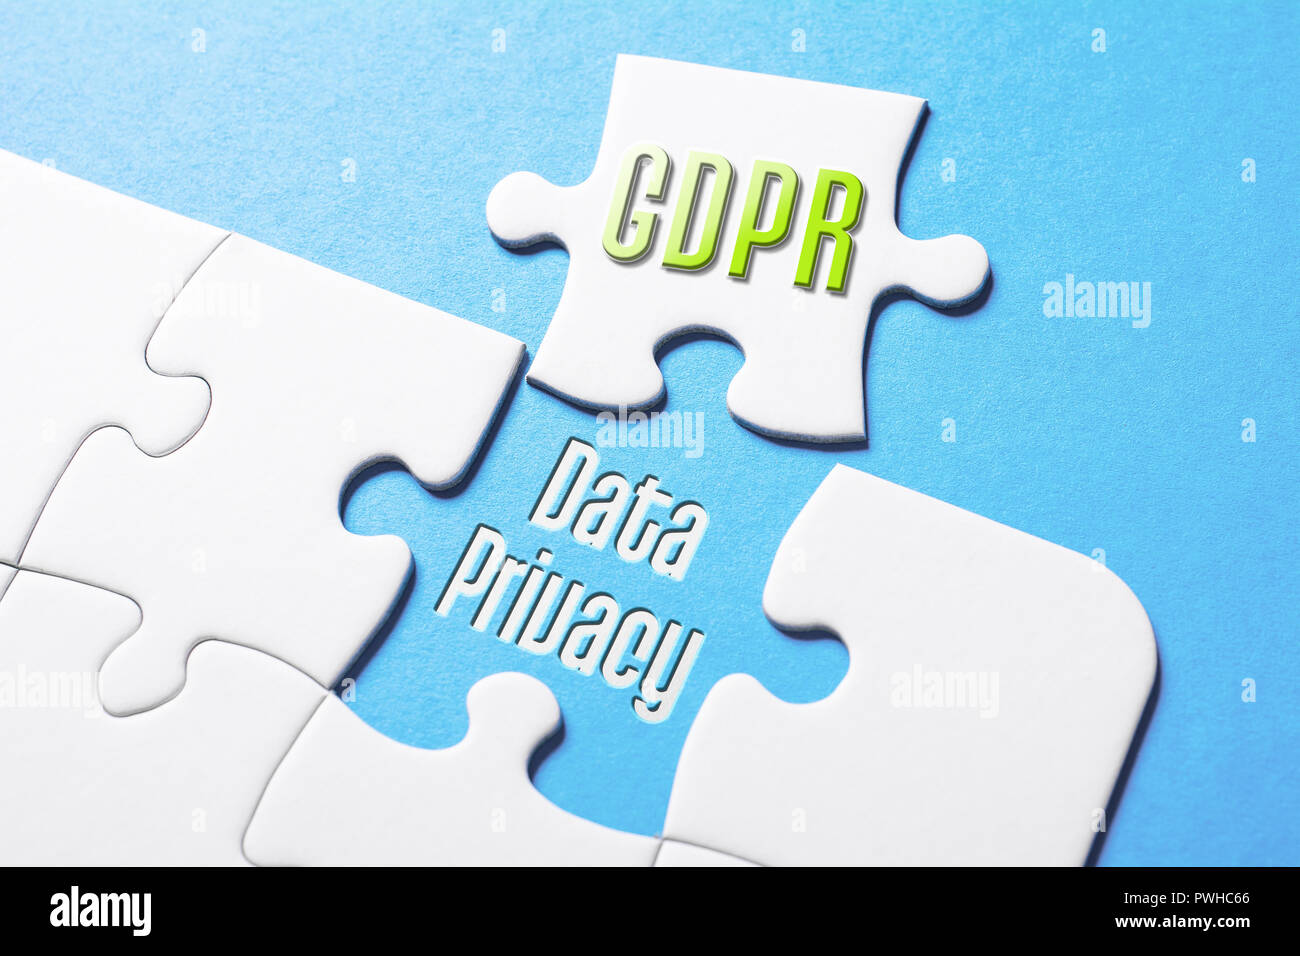 The Words GDPR And Data Privacy In Missing Piece Jigsaw Puzzle - Stock Image